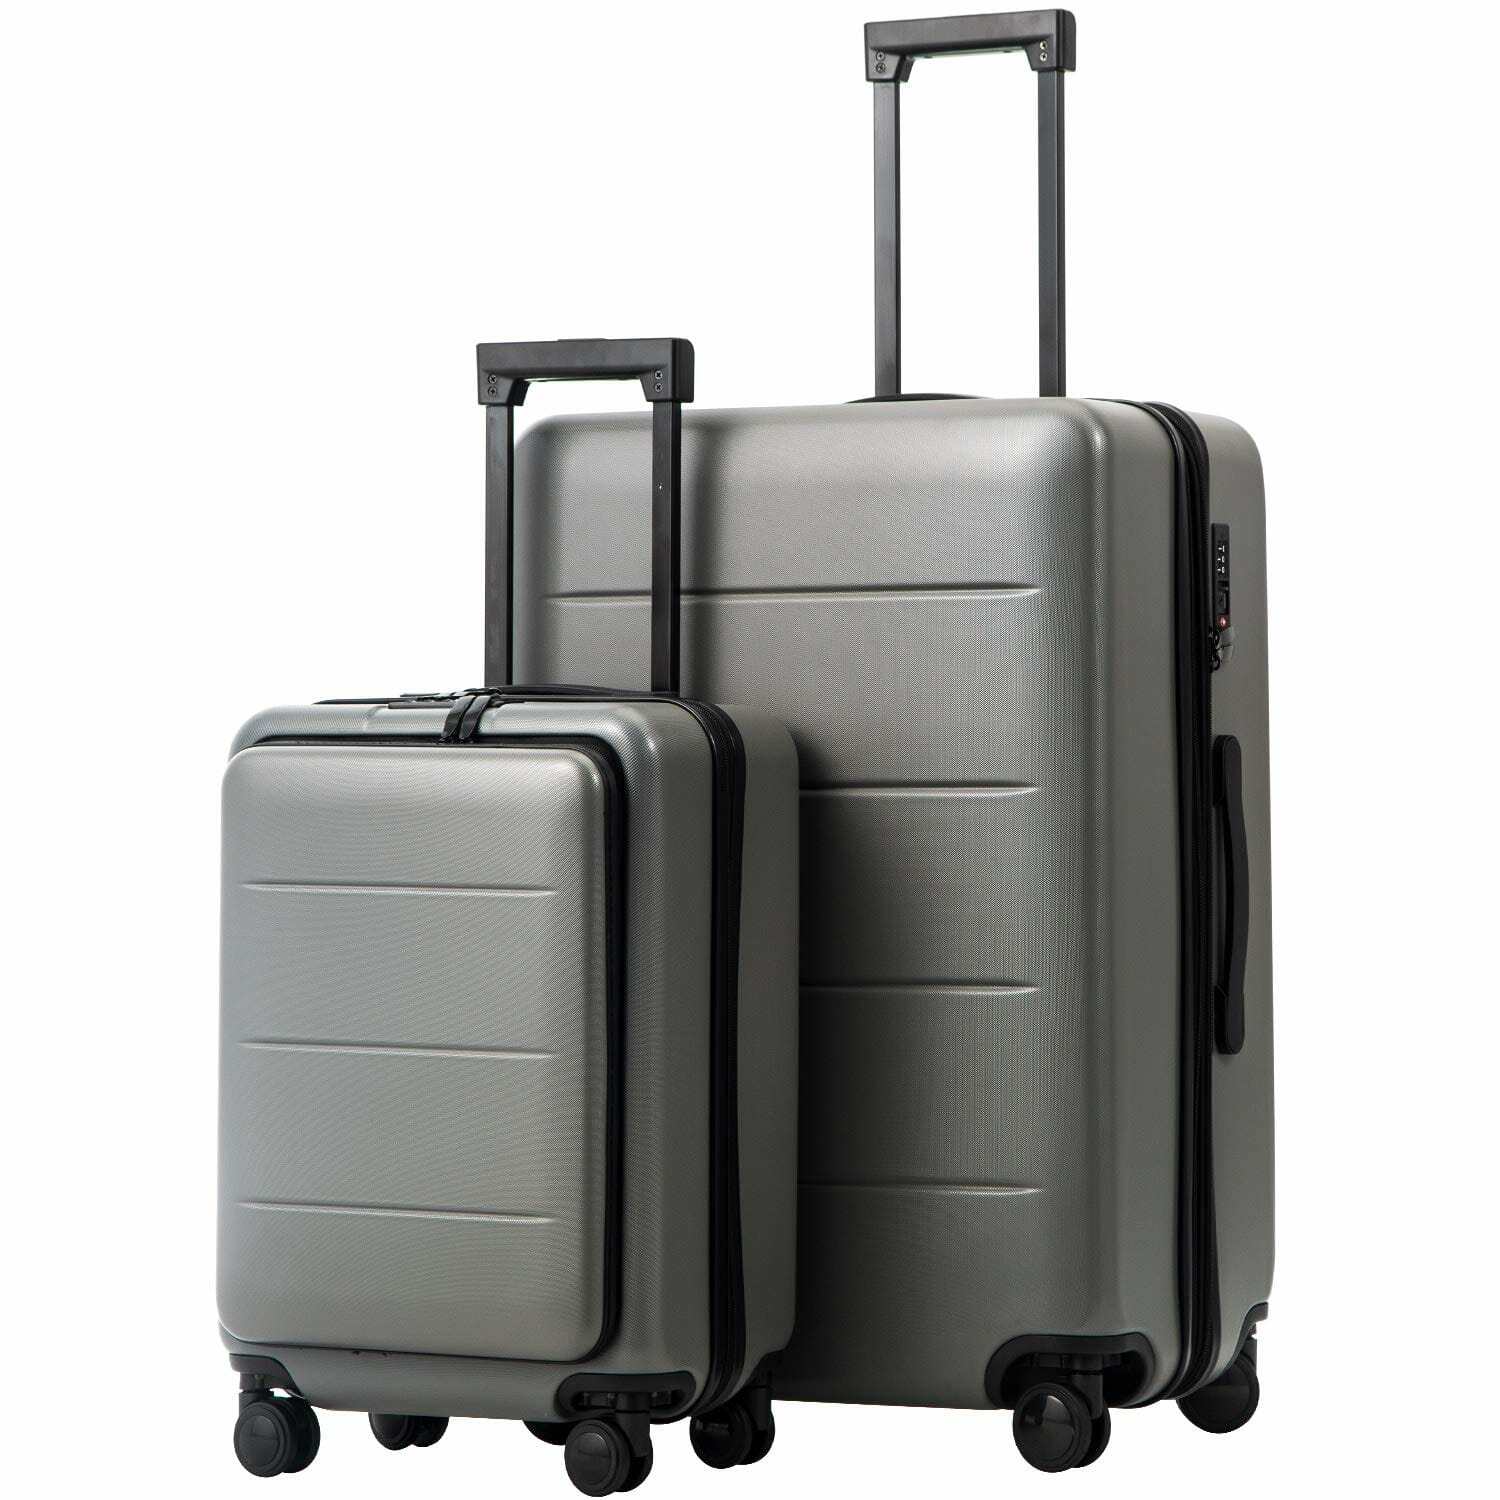 chrsitmas-gifts-for-parents-luggage